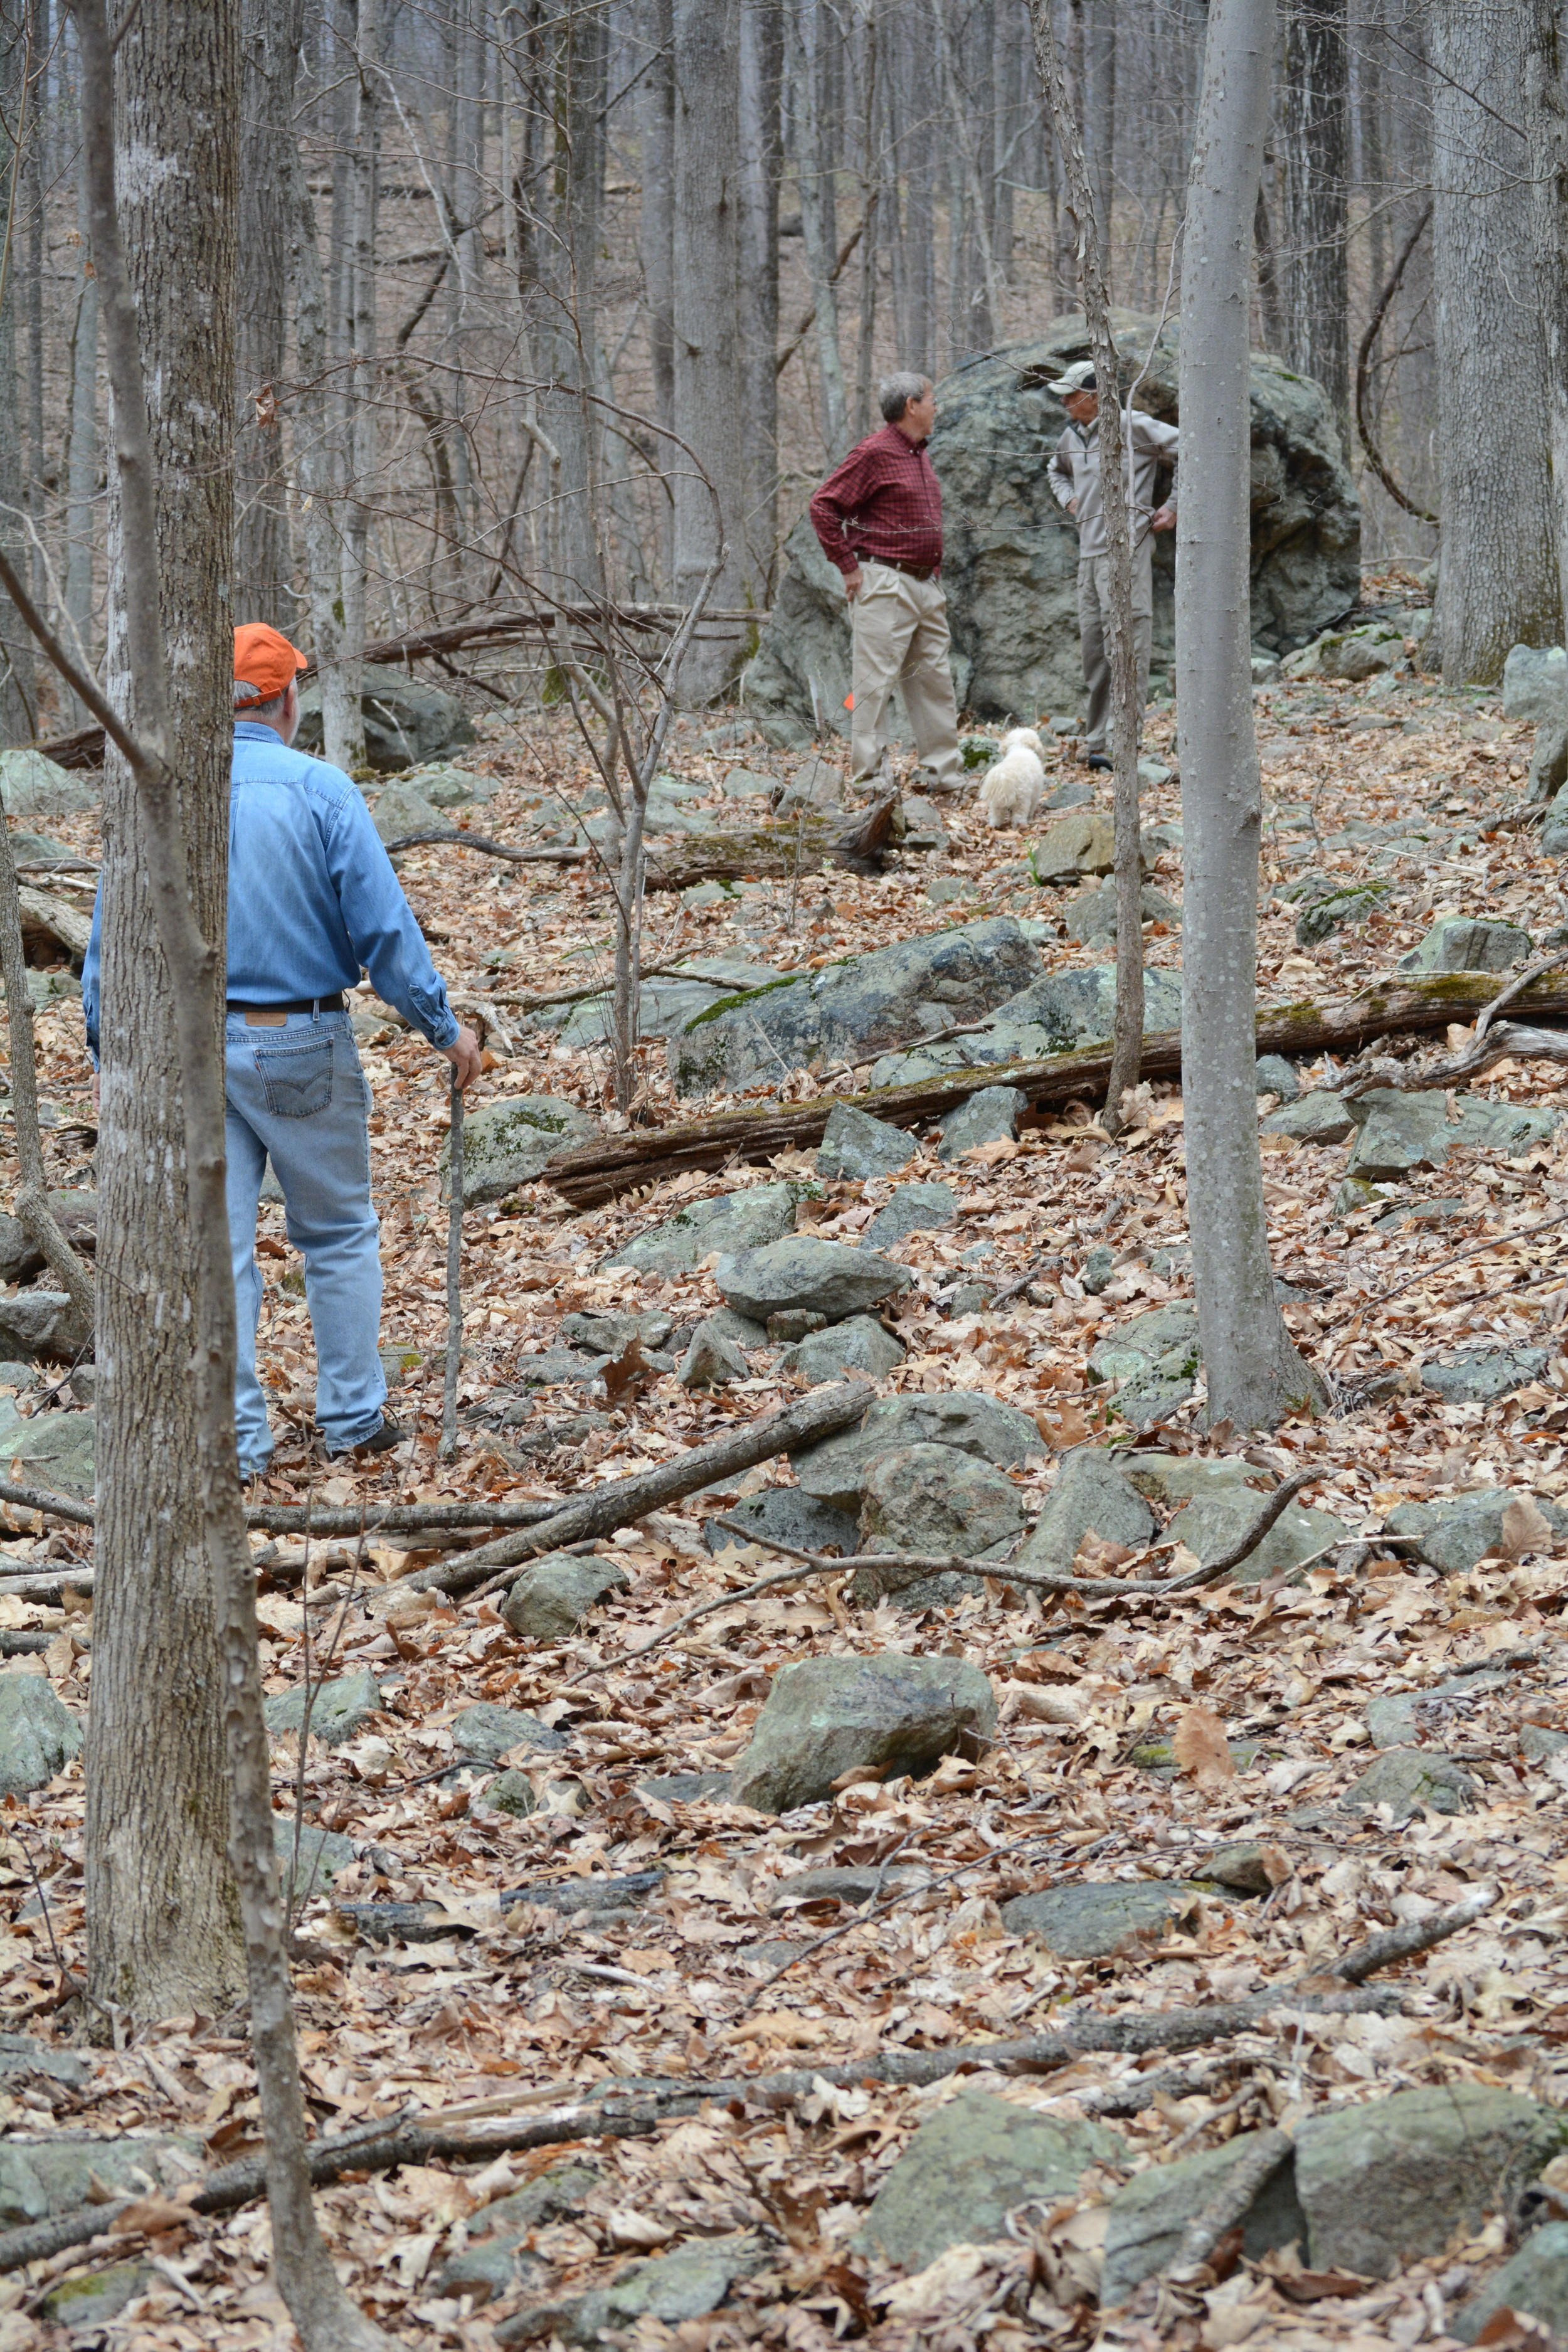 In early spring the field Archery course will be easier to establish. The WSC's goal is to clear the path to make it very easy to walk. (Pictured: Karl Hess (red shirt) talking with Jerry RenDich in late March 2016 as Mike capps surveys what needs to be done to get started.)